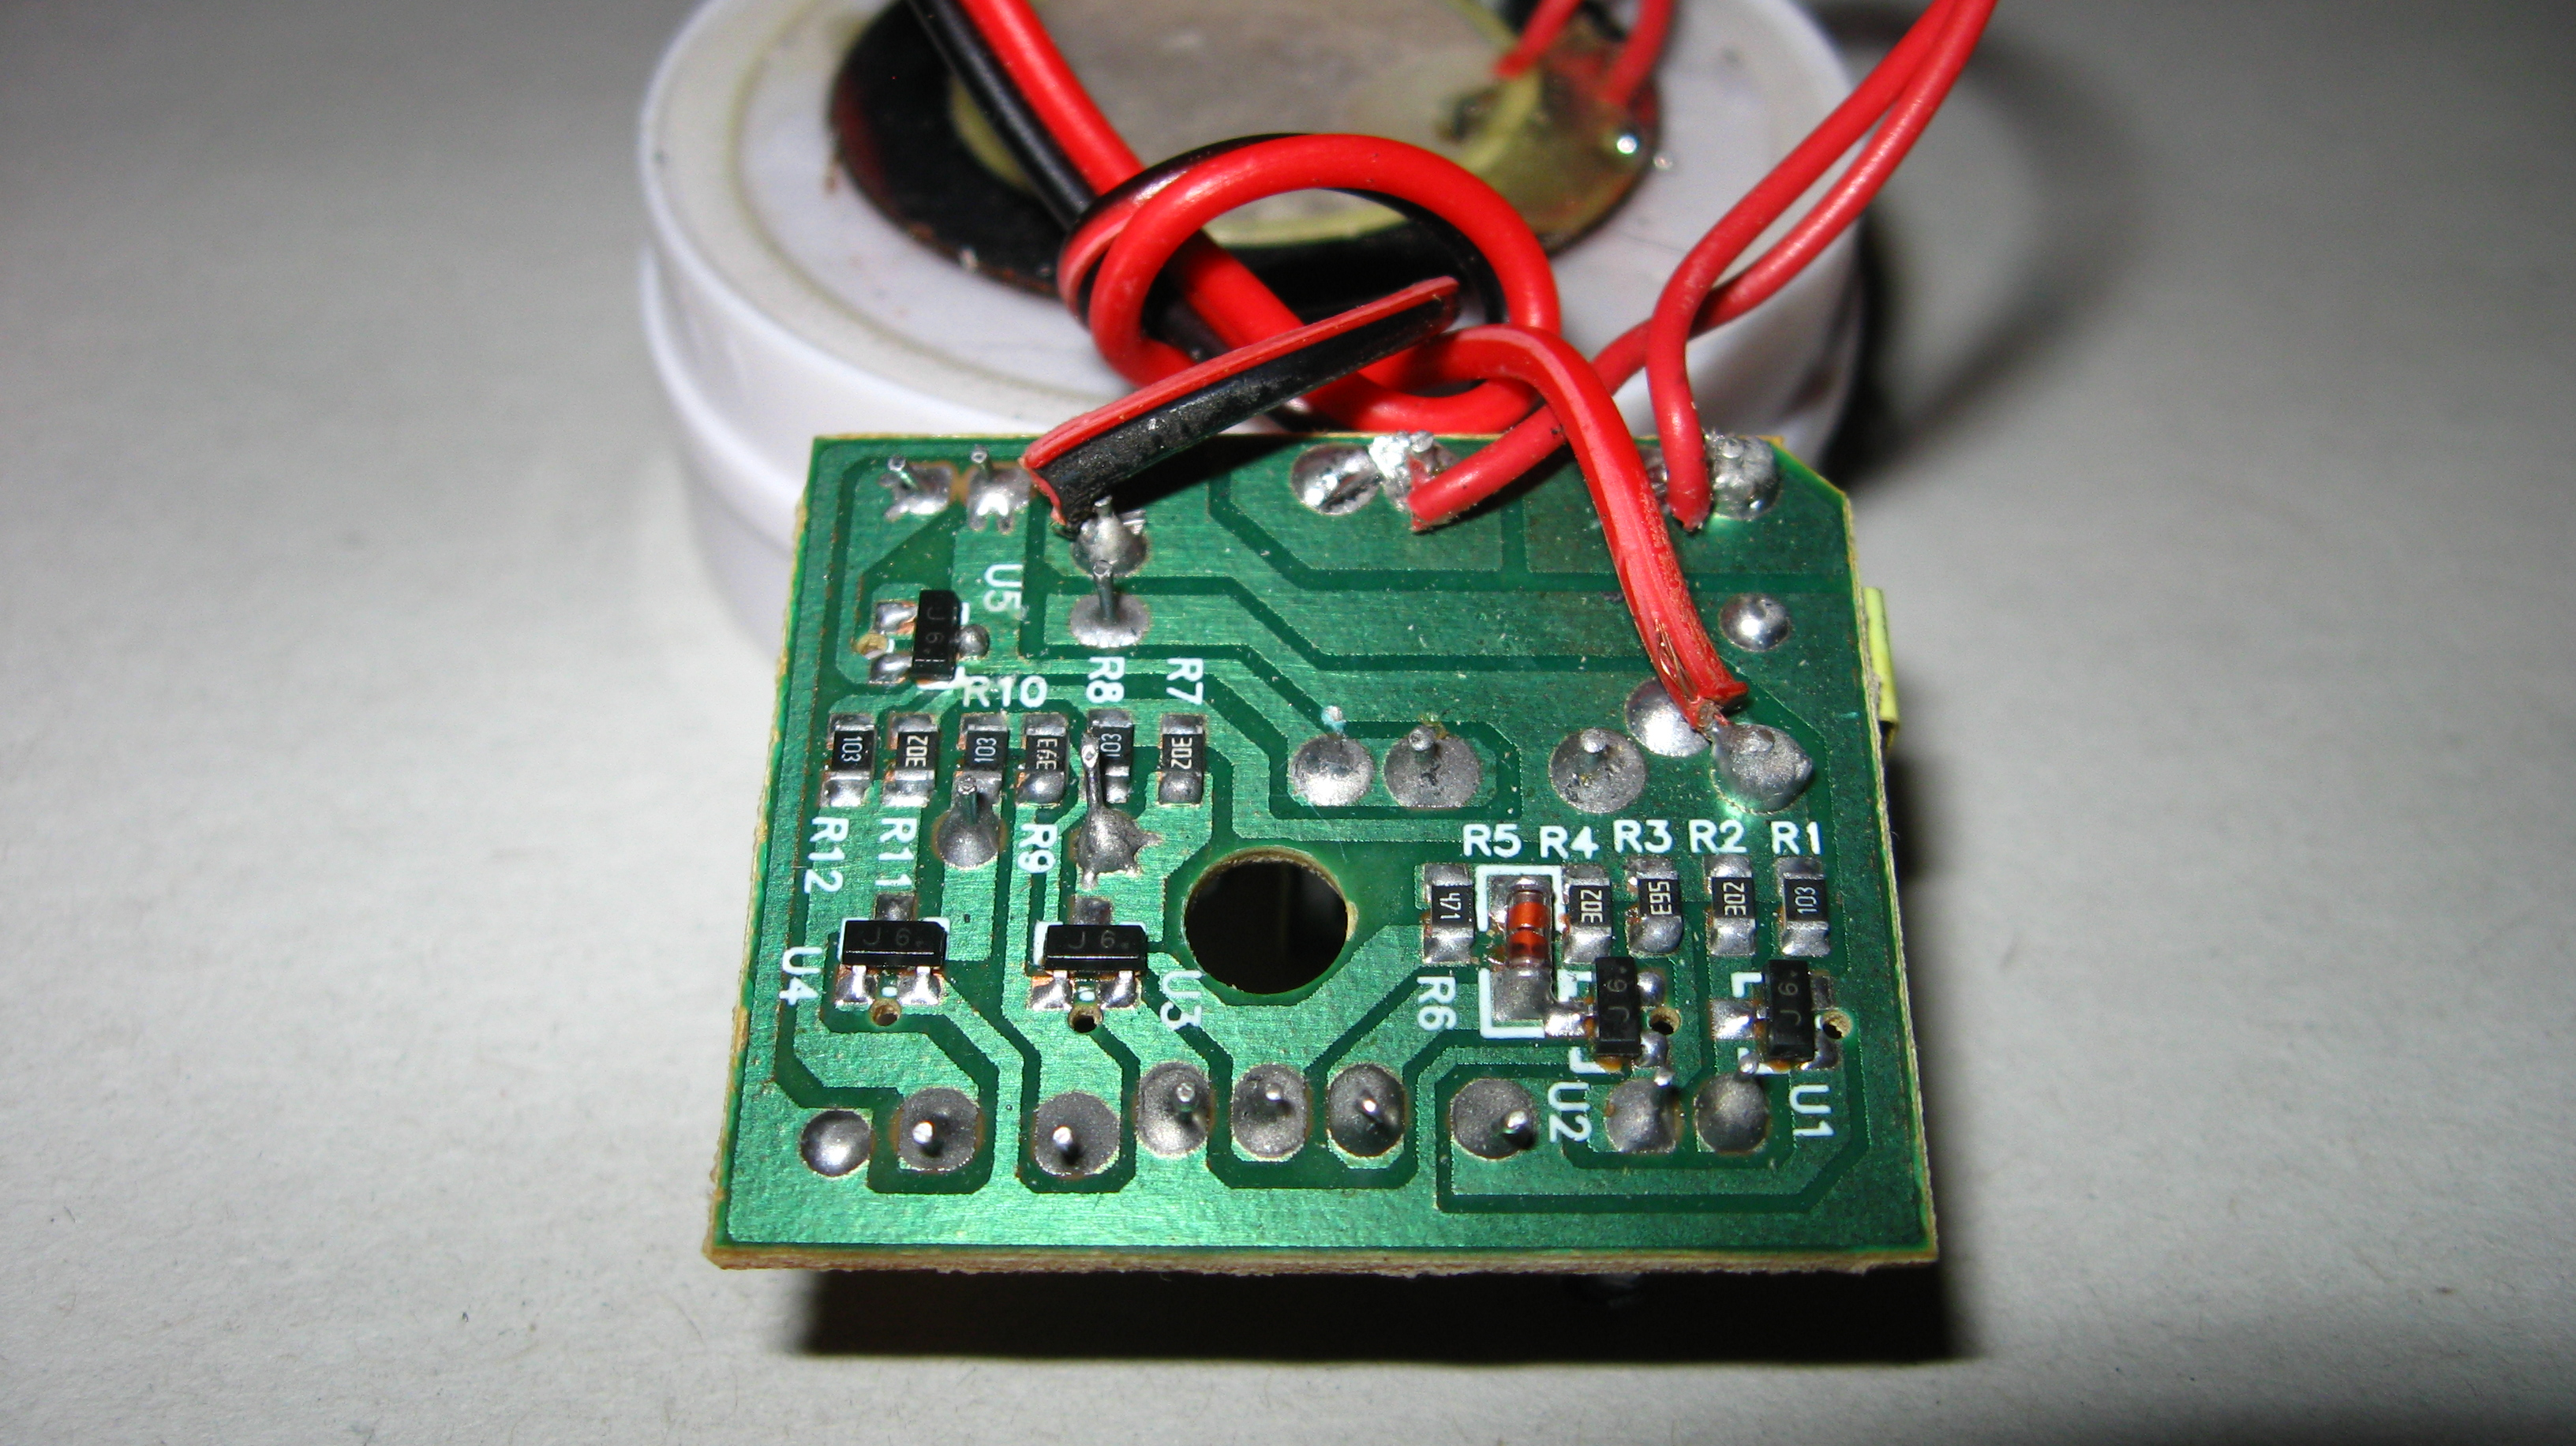 Modifying 120 Db Siren For Driving It With C Avr Freaks Police Tone Circuit